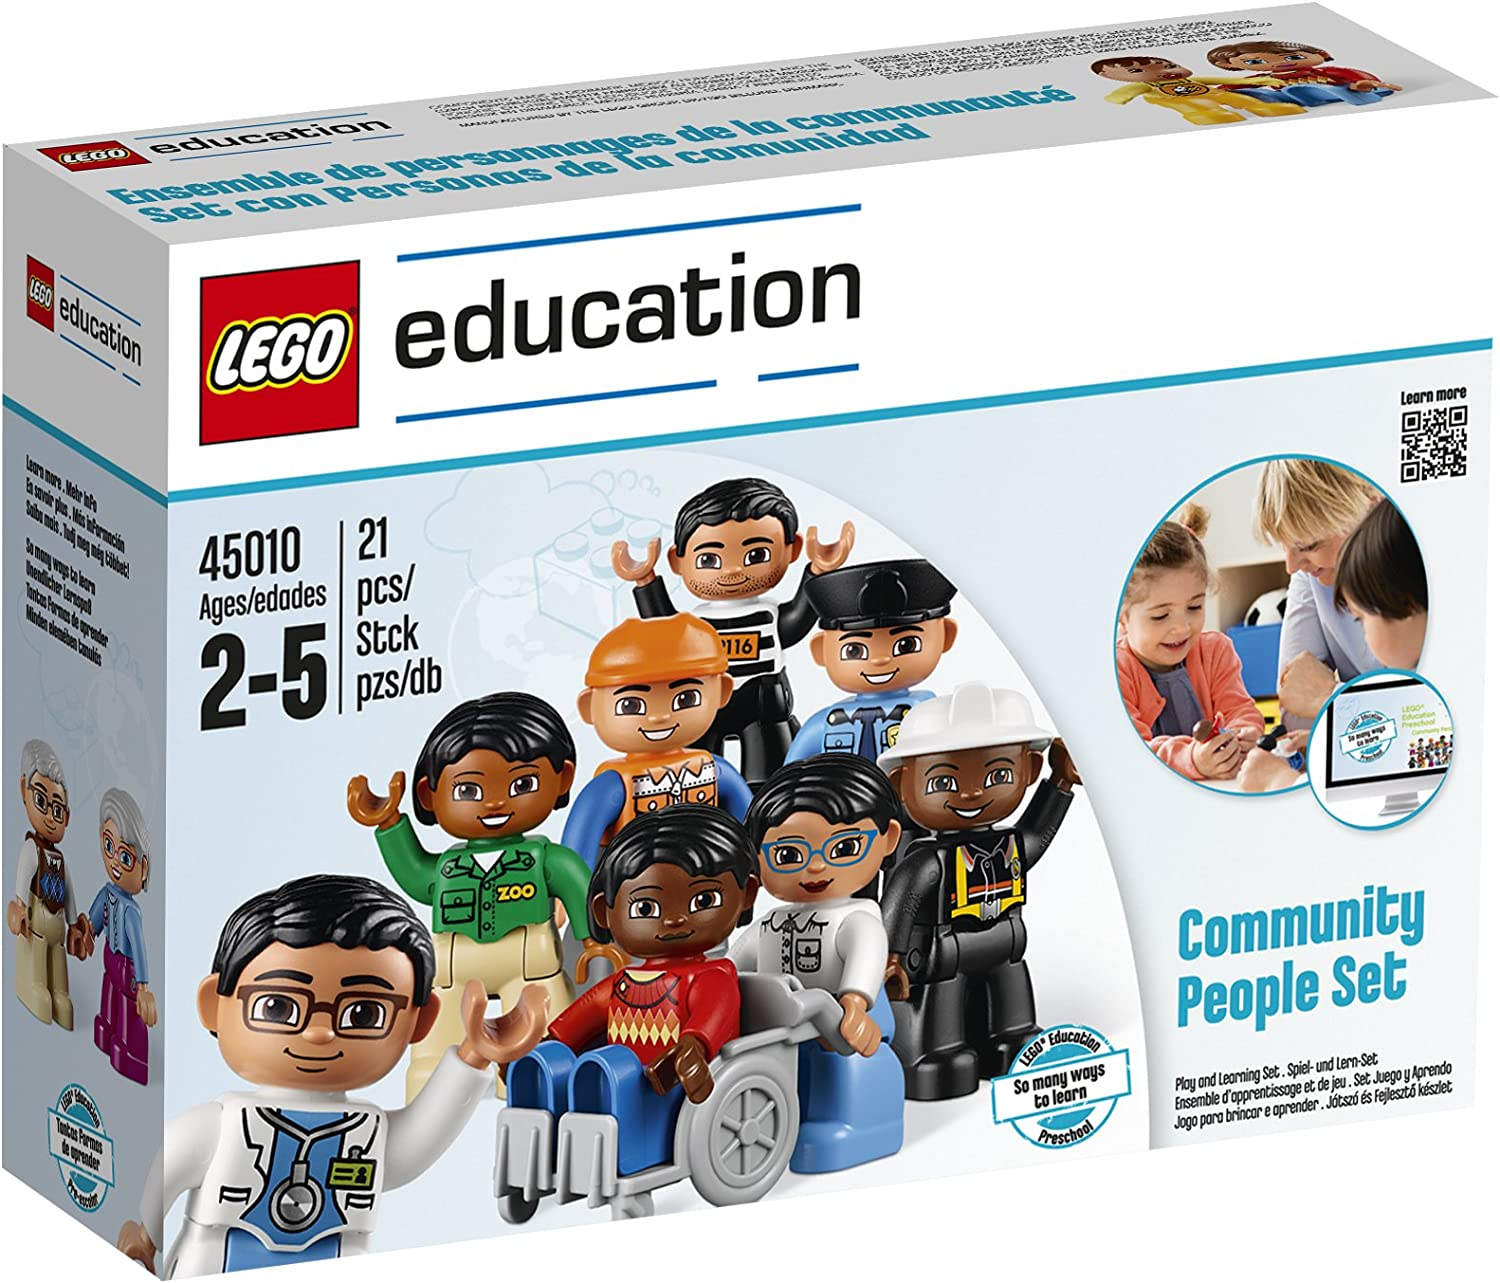 Community People Set for Exploring Roles and Responsibilities by LEGO Education DUPLO